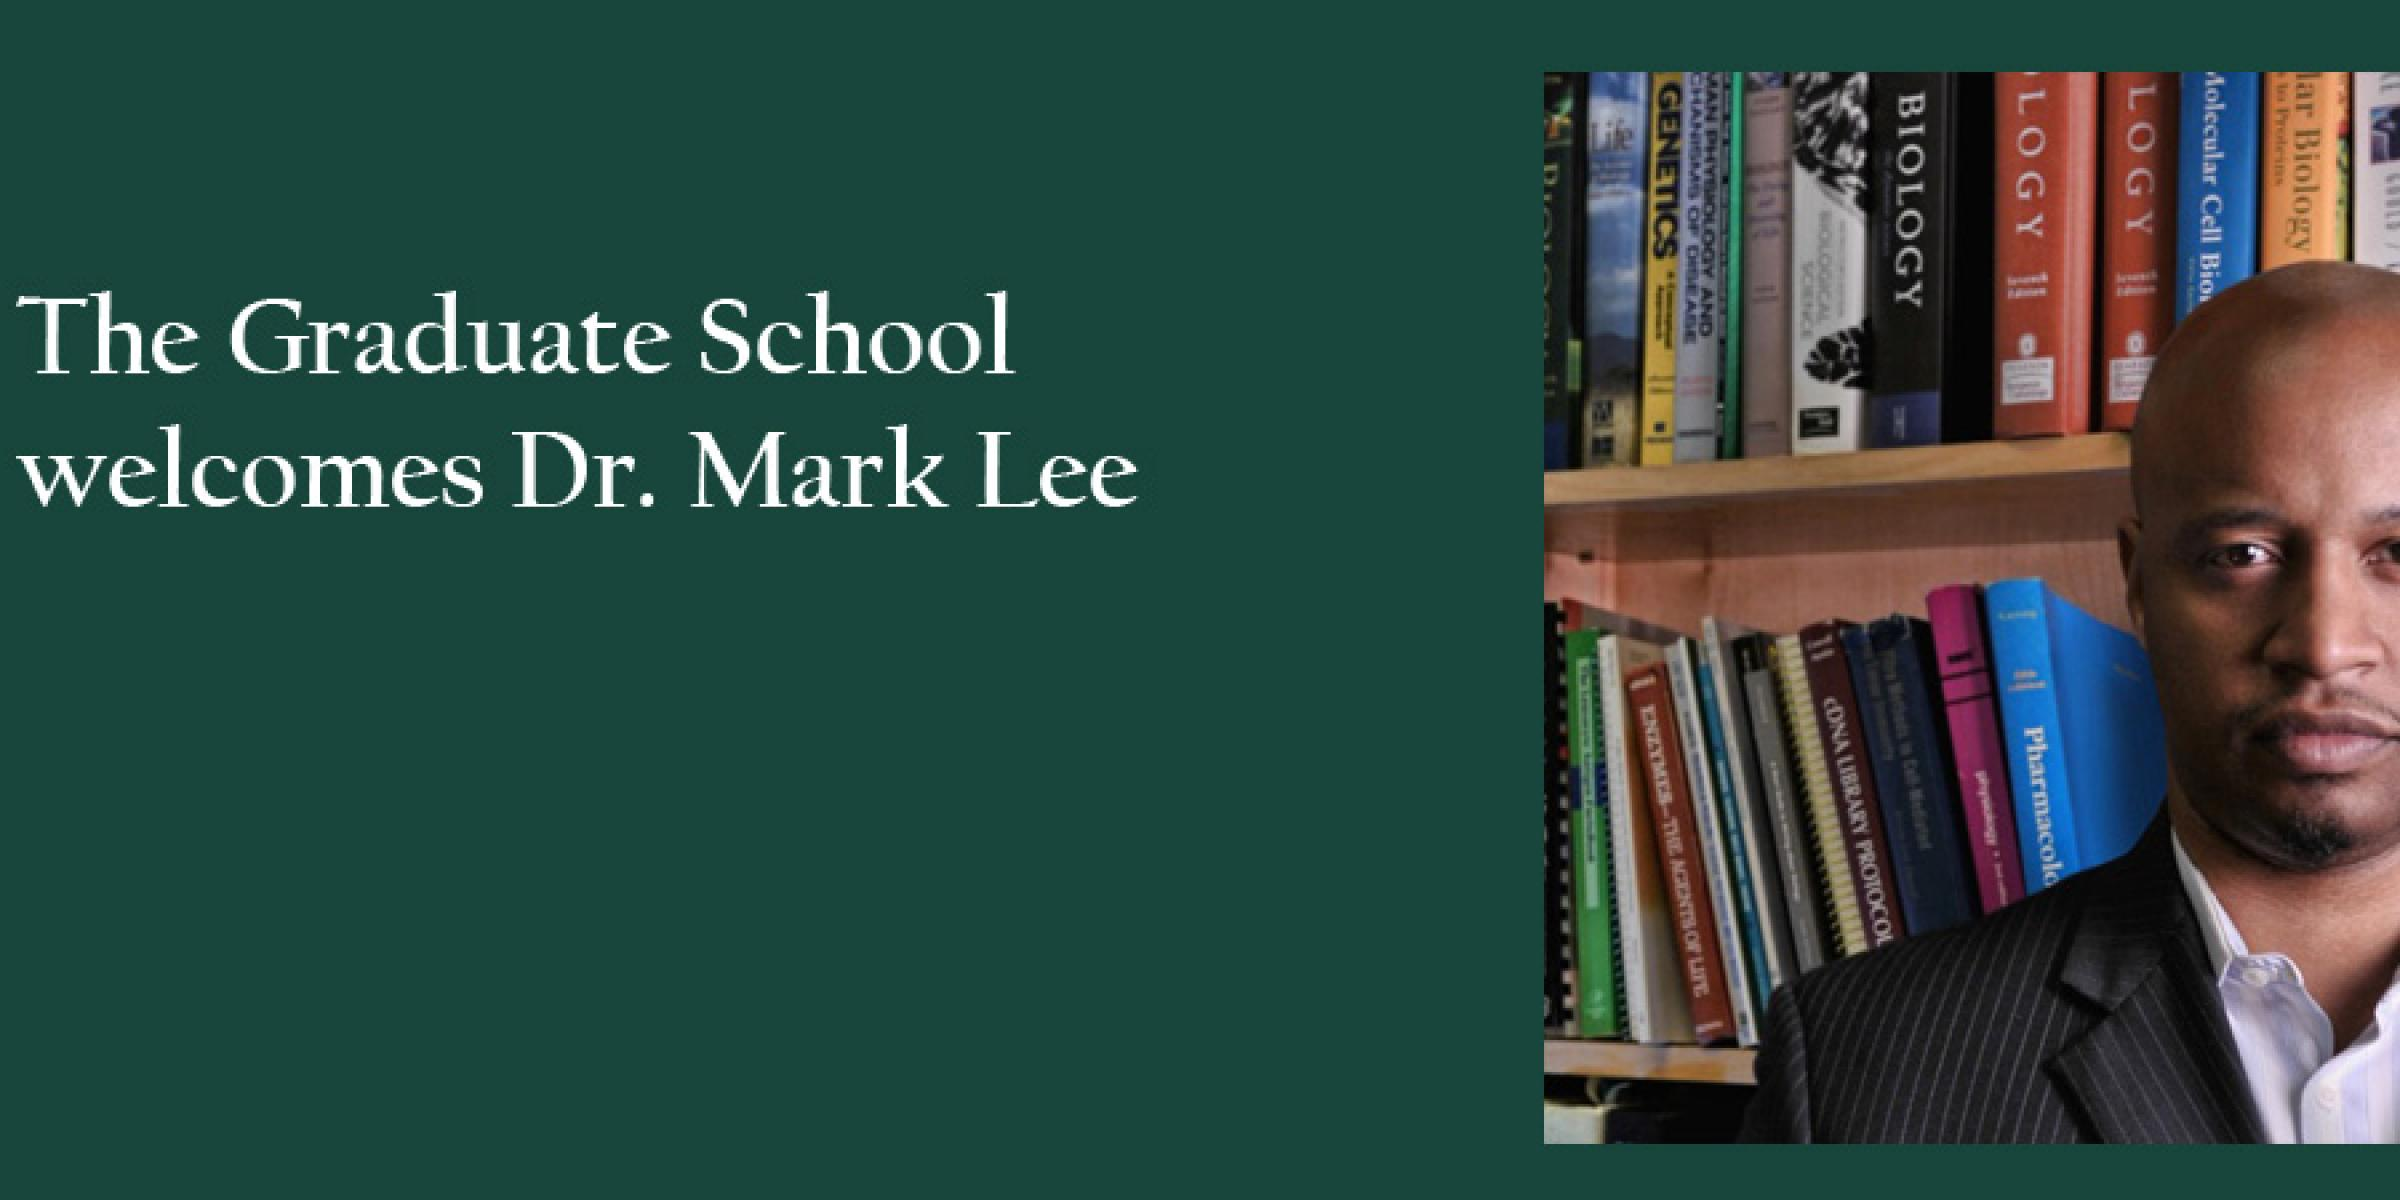 Welcome Dr. Mark Lee